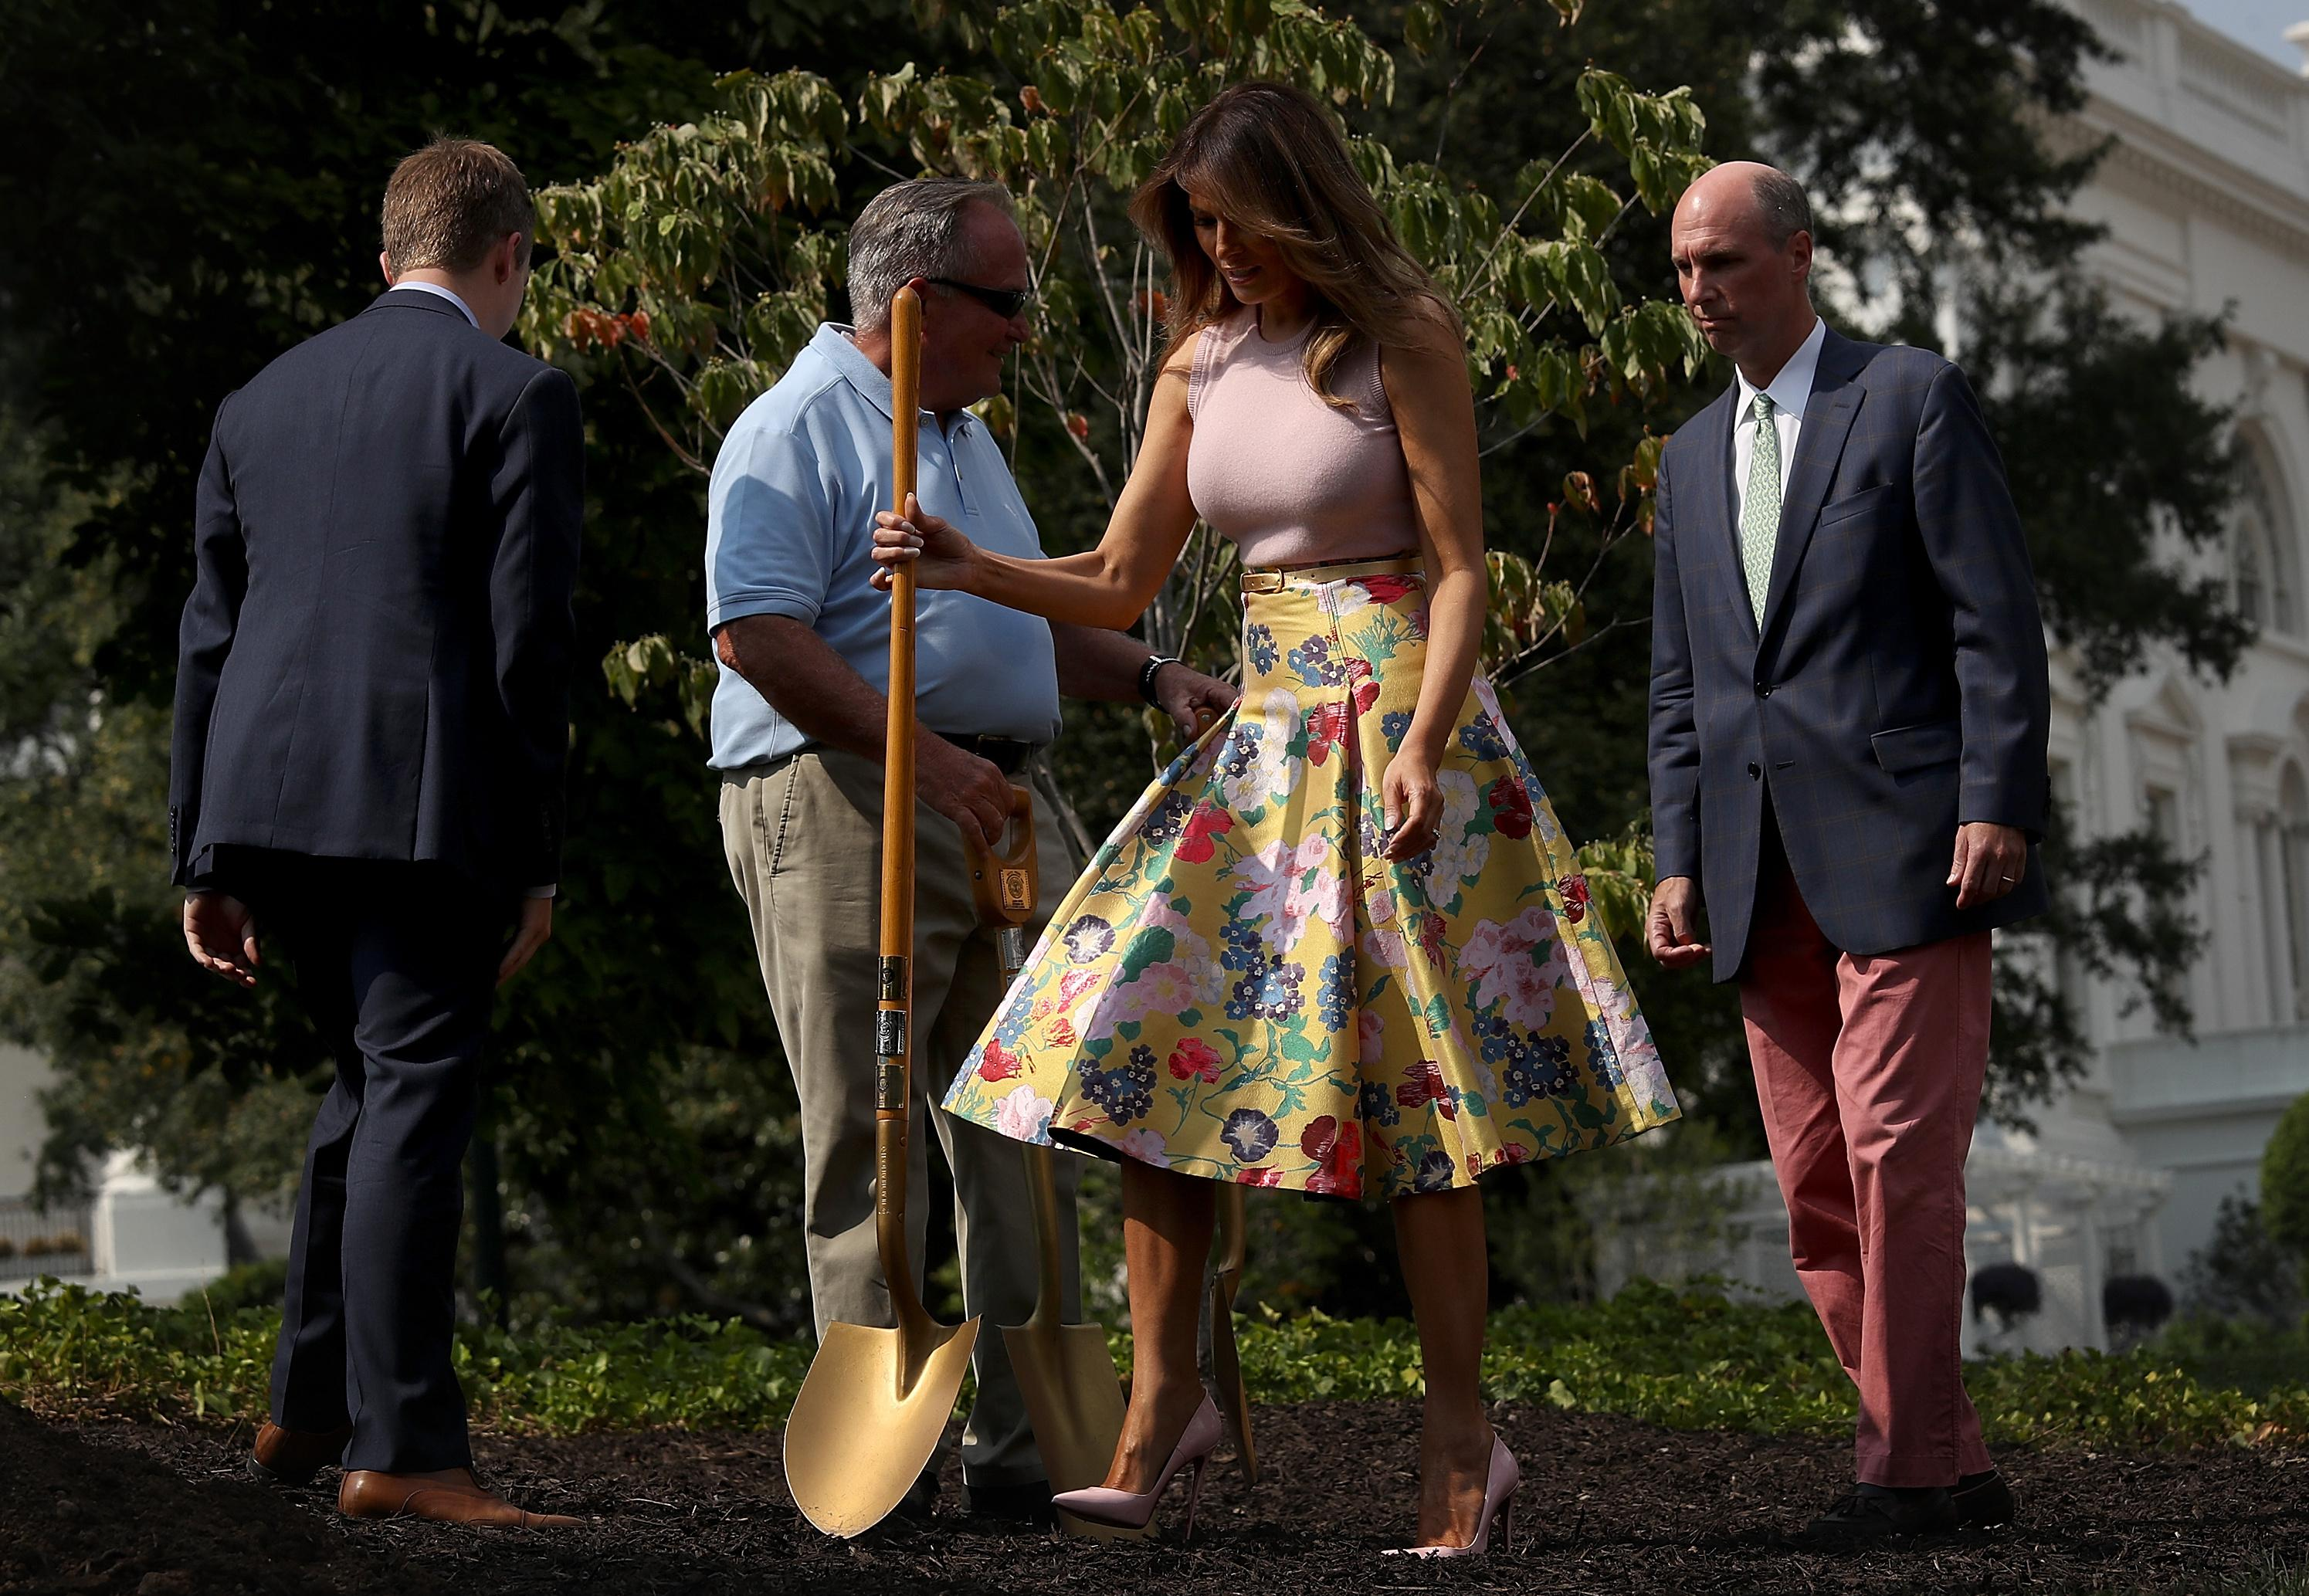 Stilettos and a $4,000 skirt: Melania Trump's tree-planting outfit